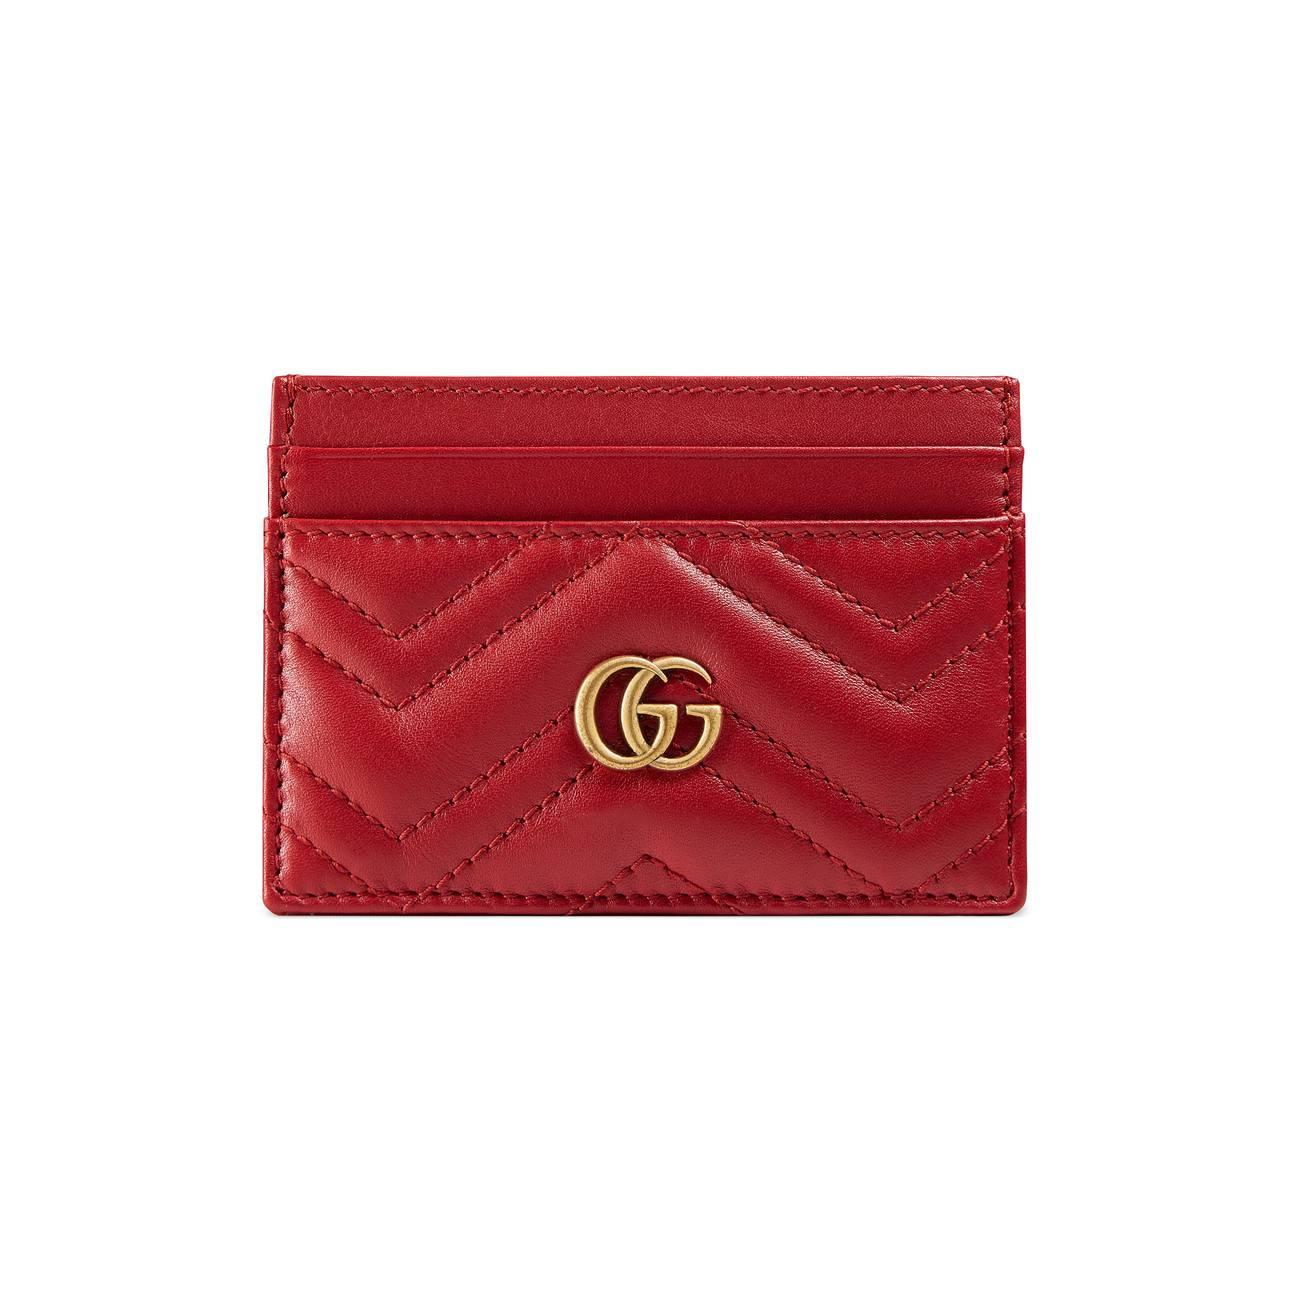 38168b3e938f65 Gucci GG Marmont Card Case in Red - Save 30% - Lyst